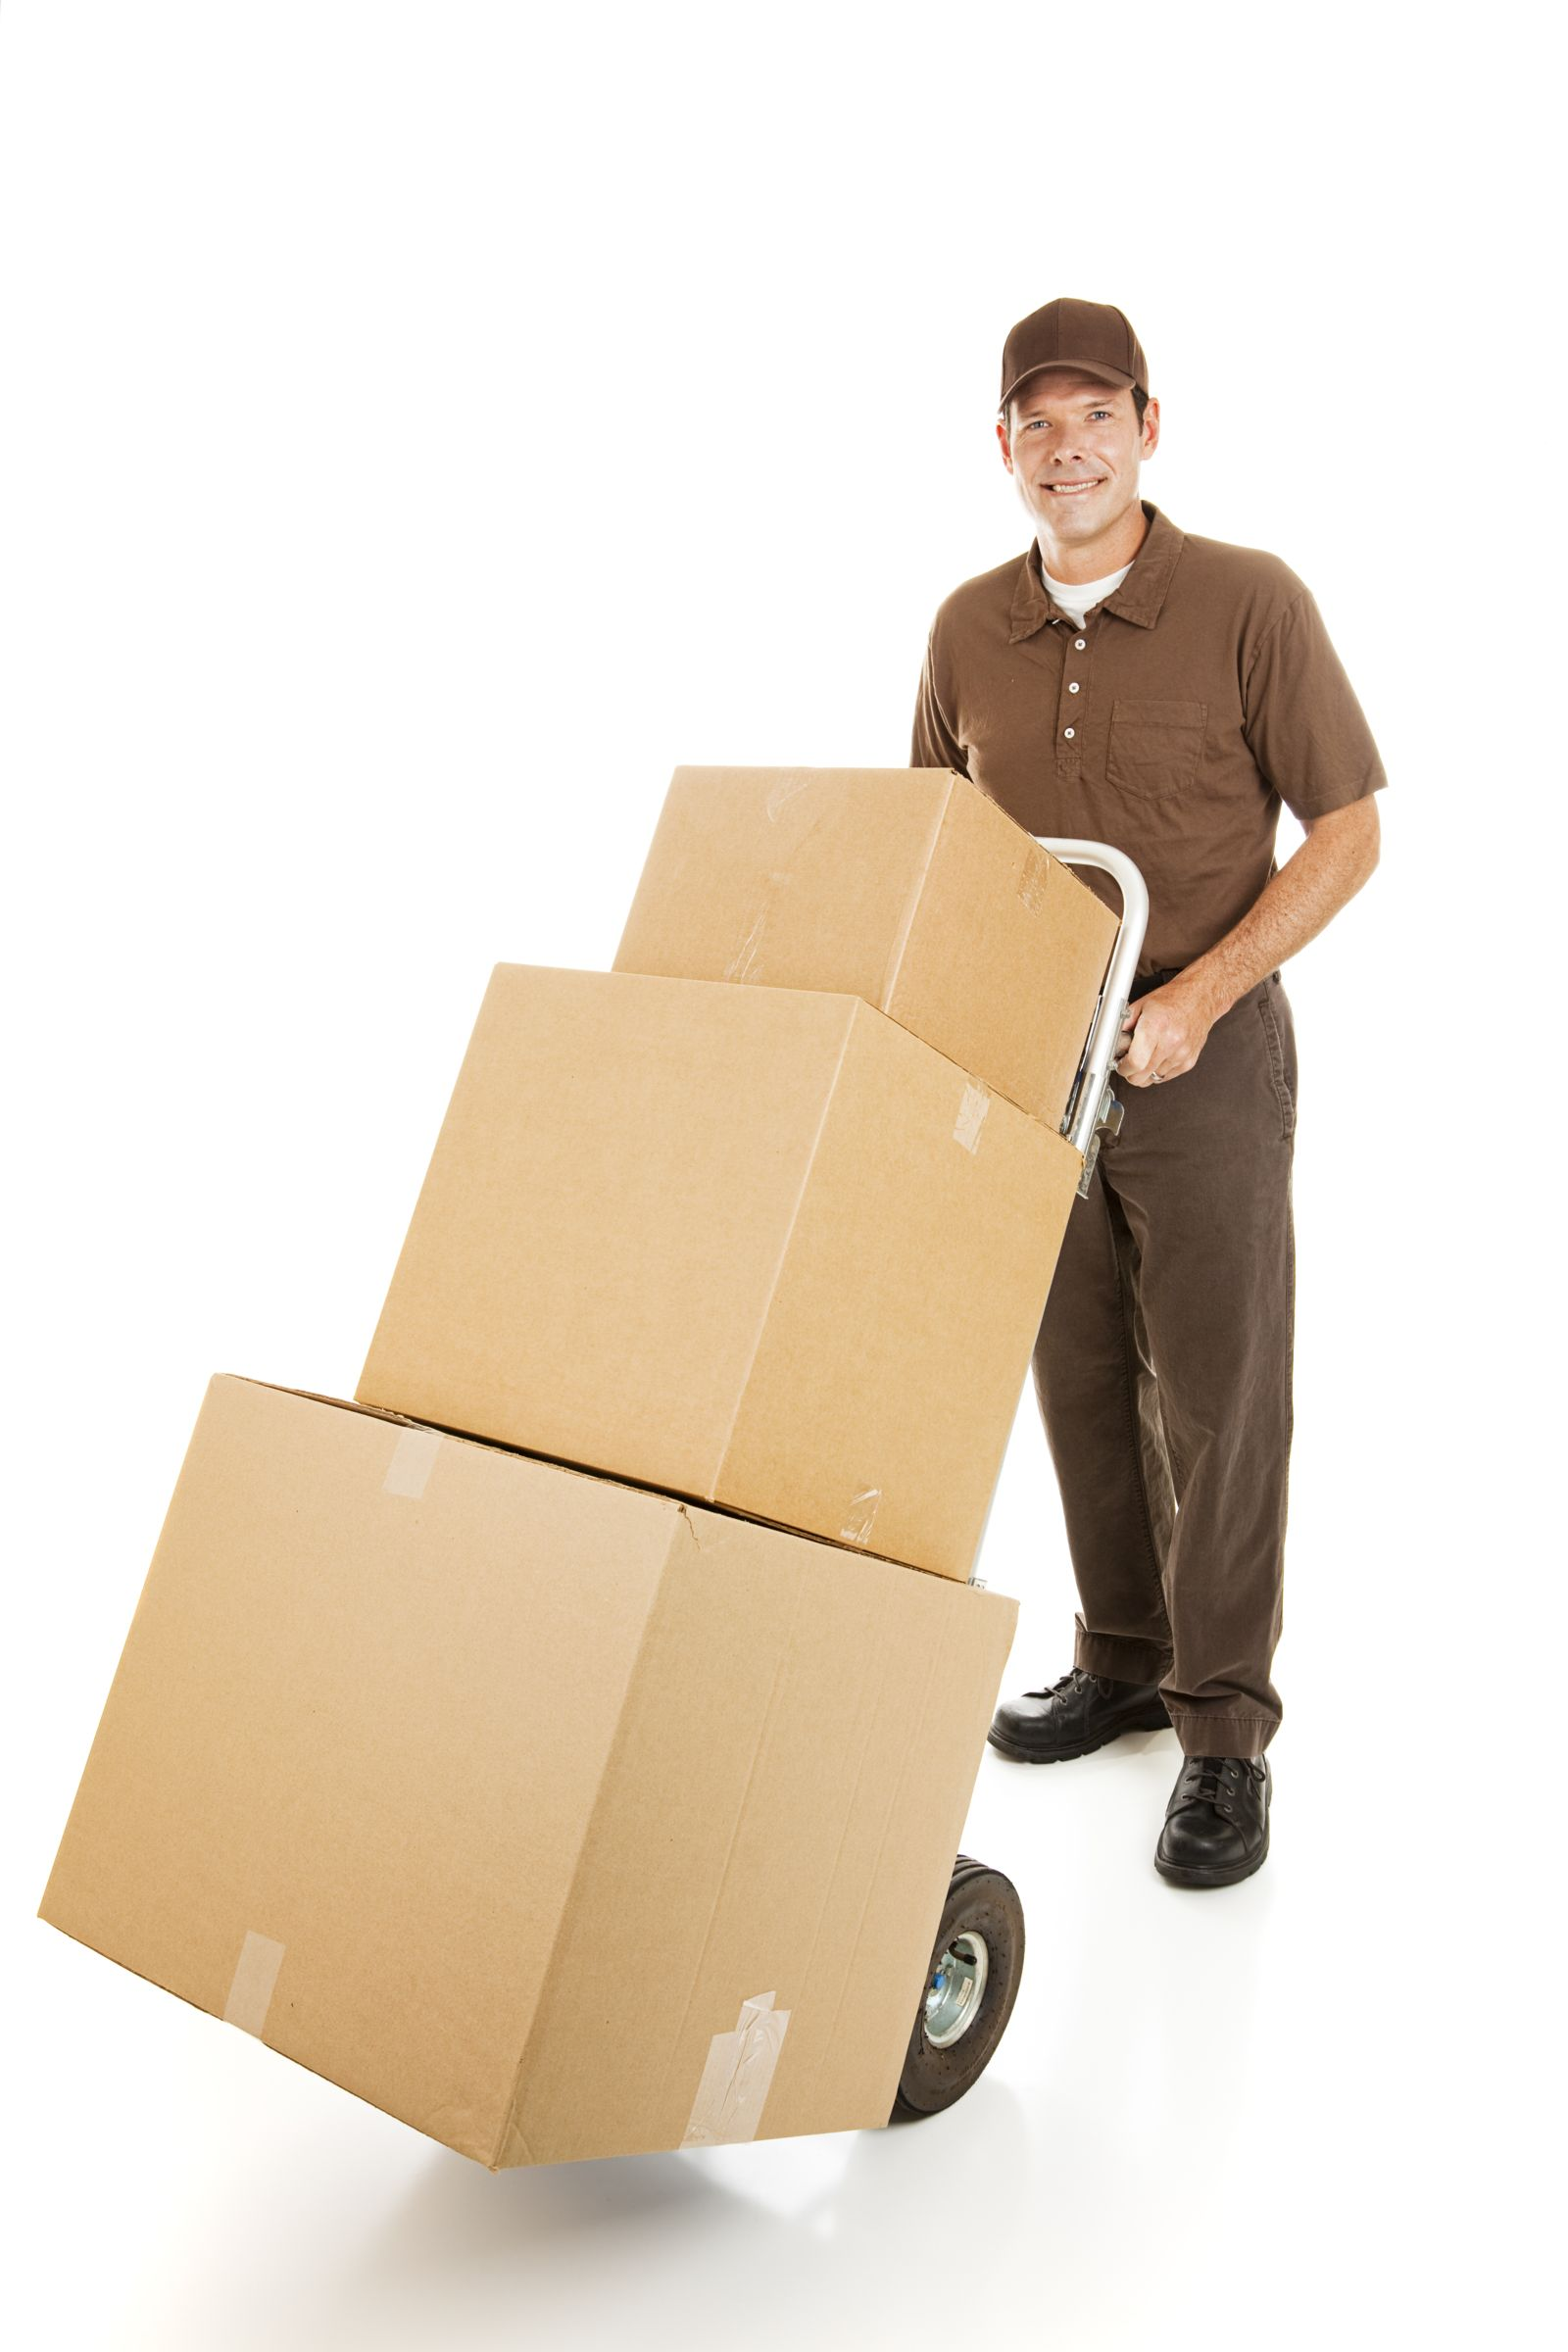 Delivery man with boxes